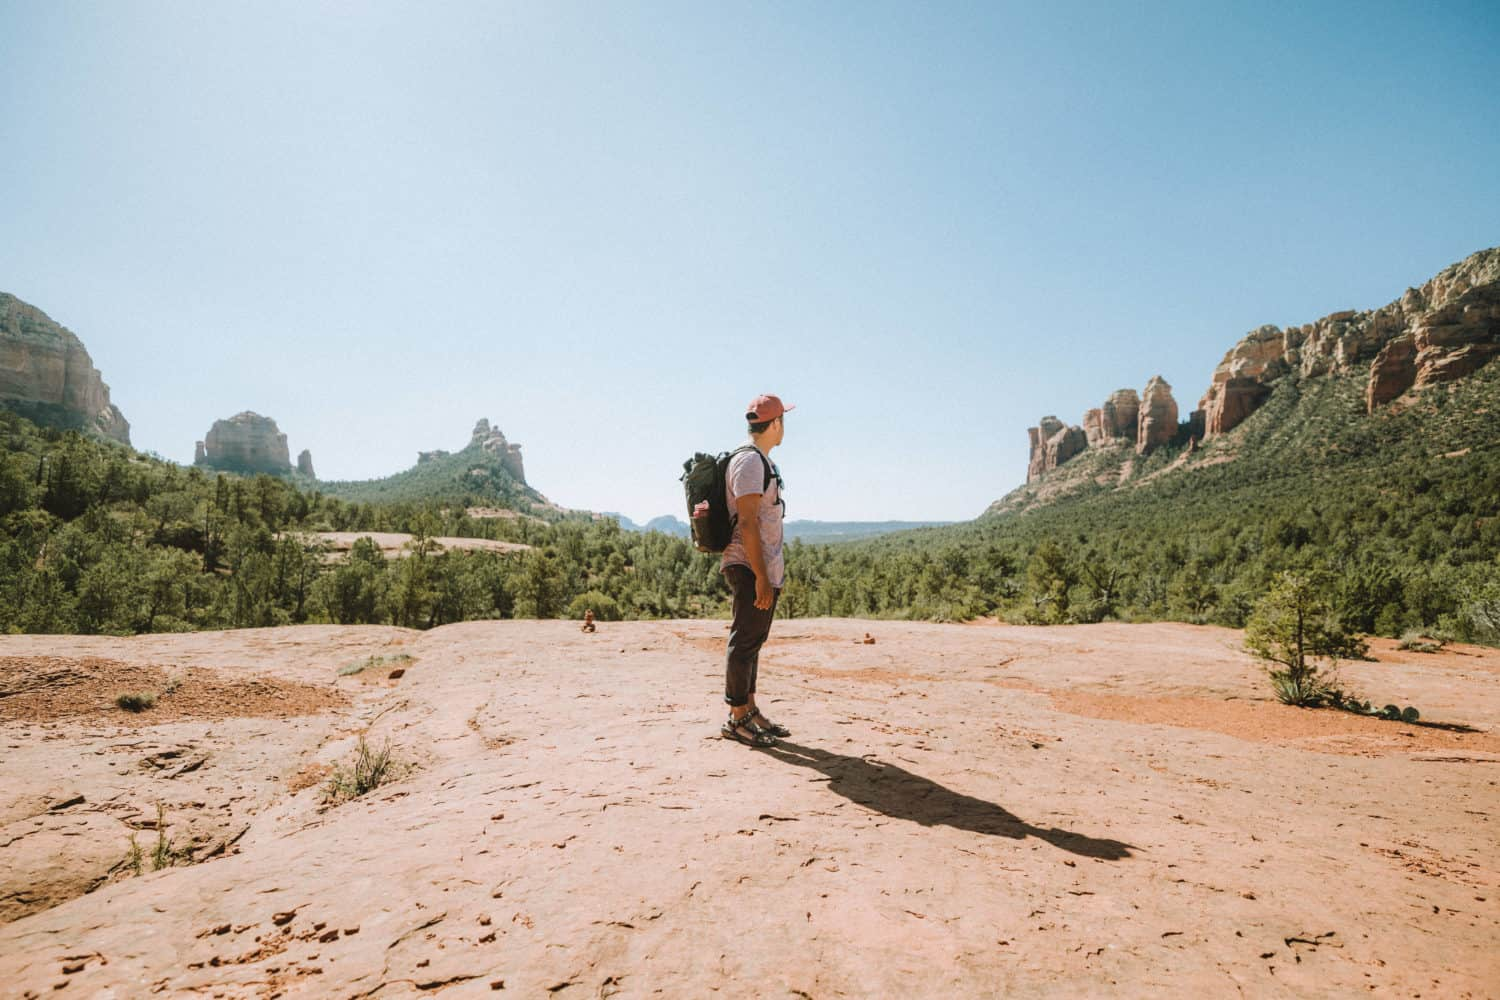 Berty Mandagie standing on Soldiers Pass Trail in Sedona, Arizona